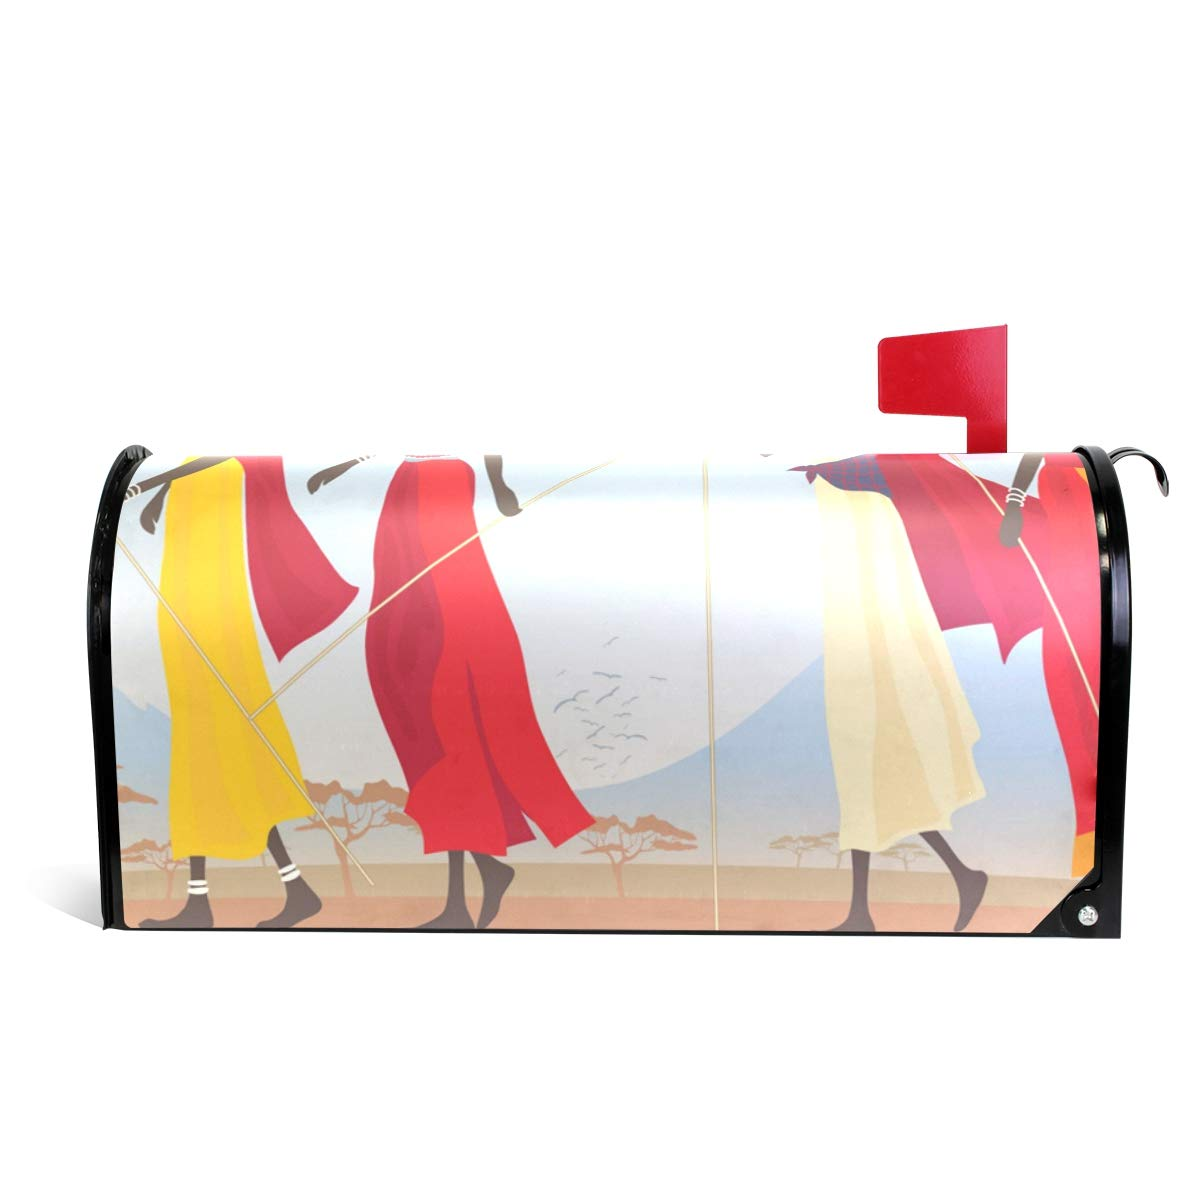 DEYYA African Women in Mountain Landscape Magnetic Mailbox Covers and Wraps Personalized Decorative Standard Size 52.6x45.8cm